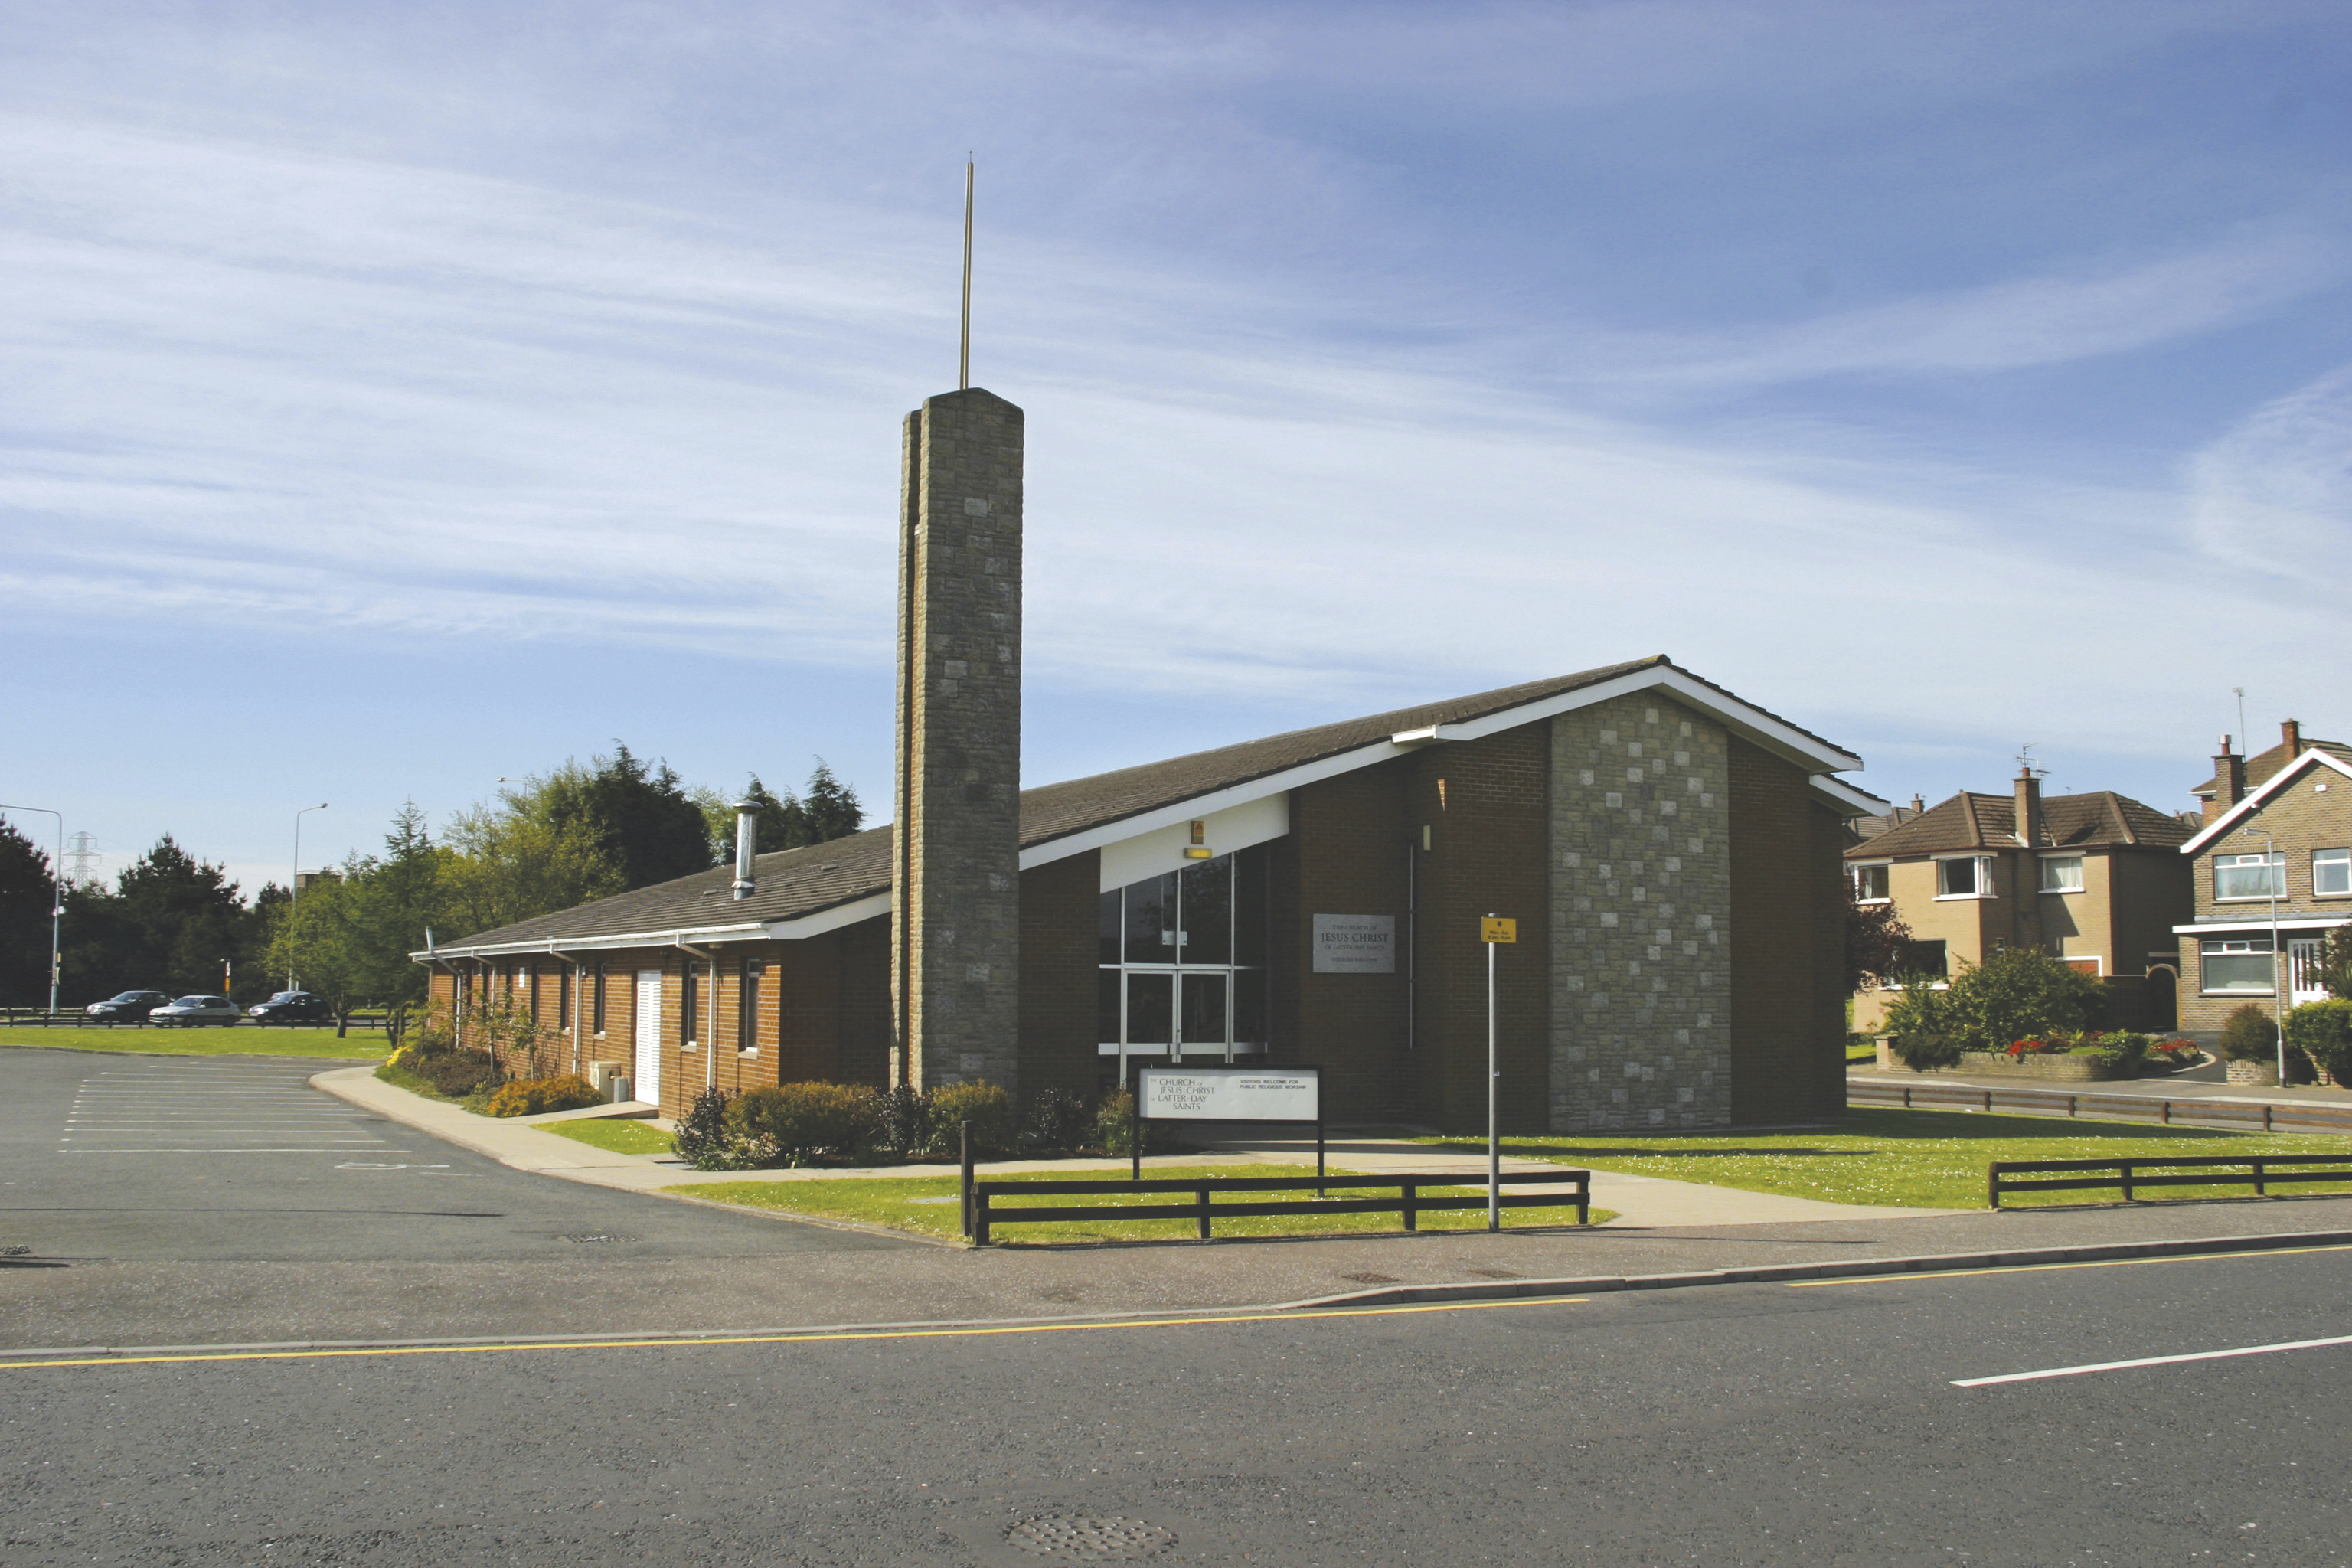 The outside of a chapel in Ireland next to a parking lot.